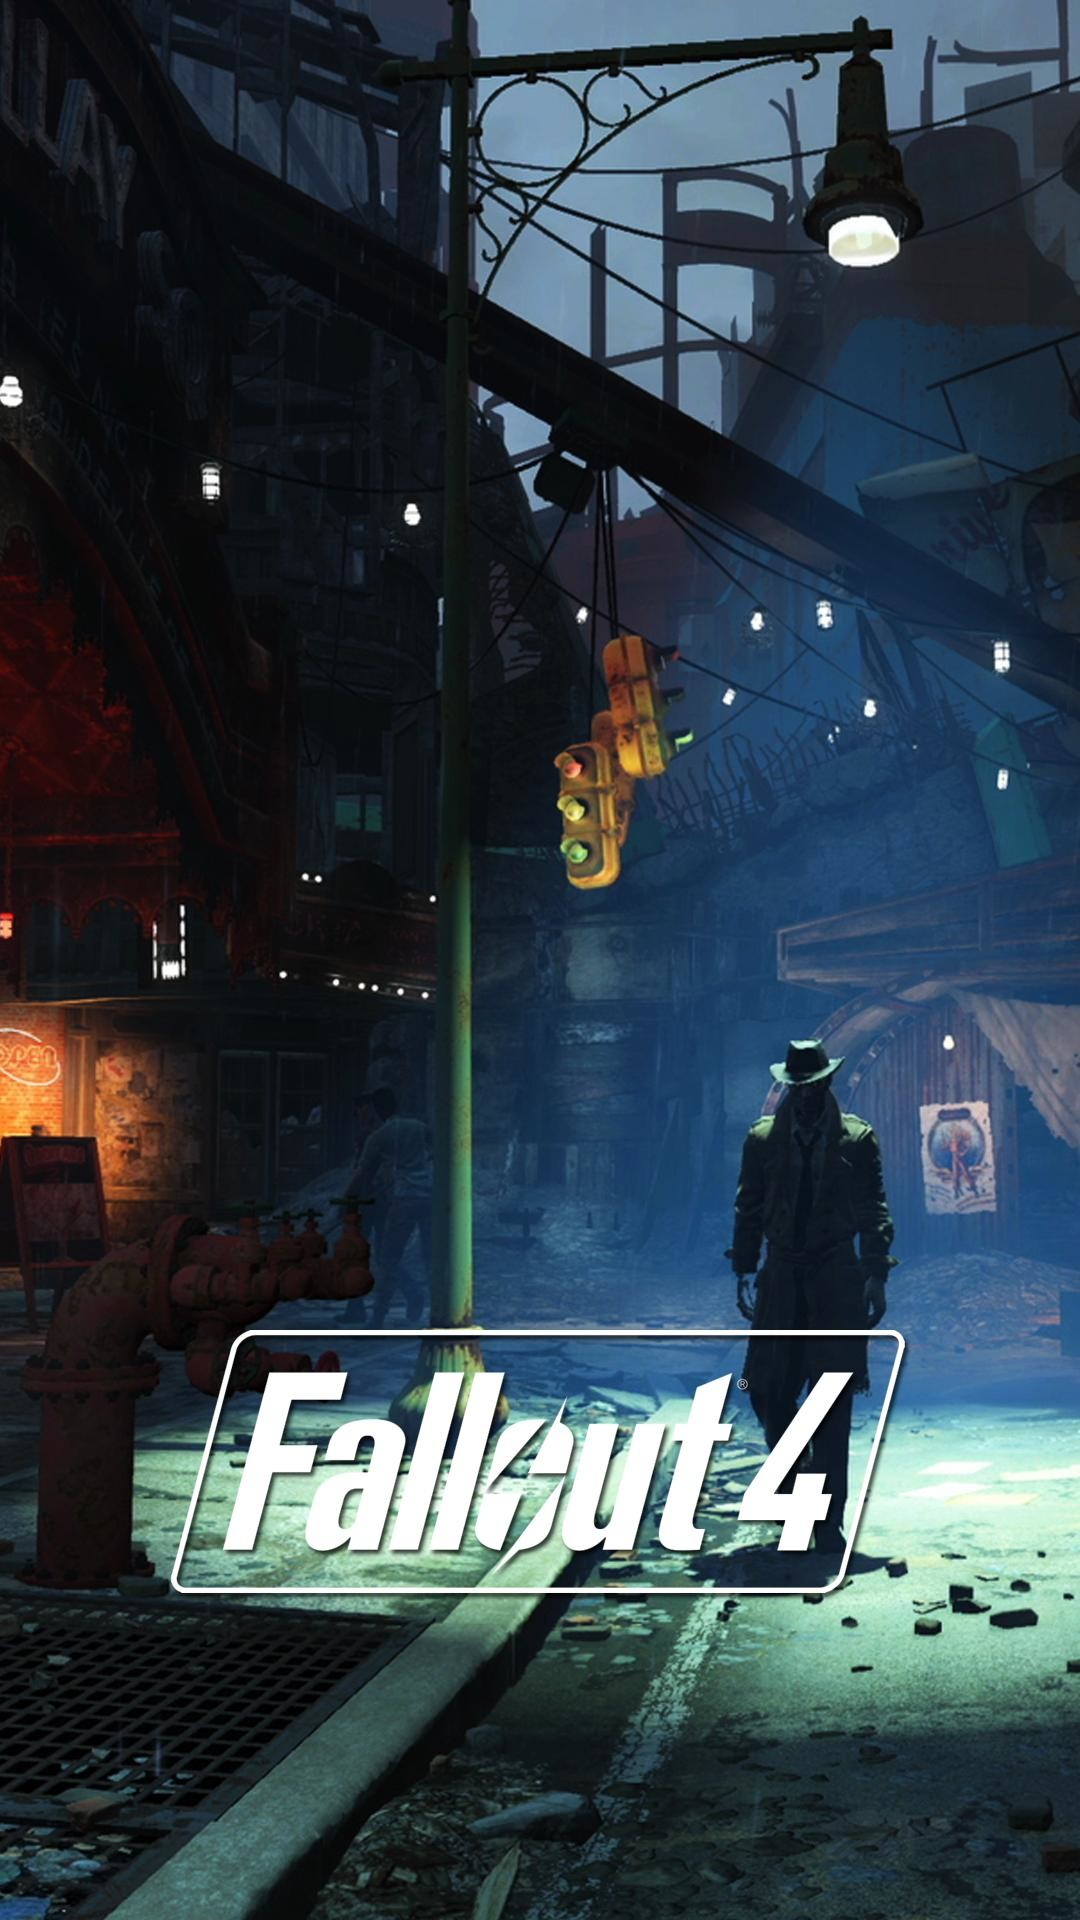 Fallout 4 wallpaper phone 61 images 1242x2208 fallout 4 power armor mobile wallpapers voltagebd Images